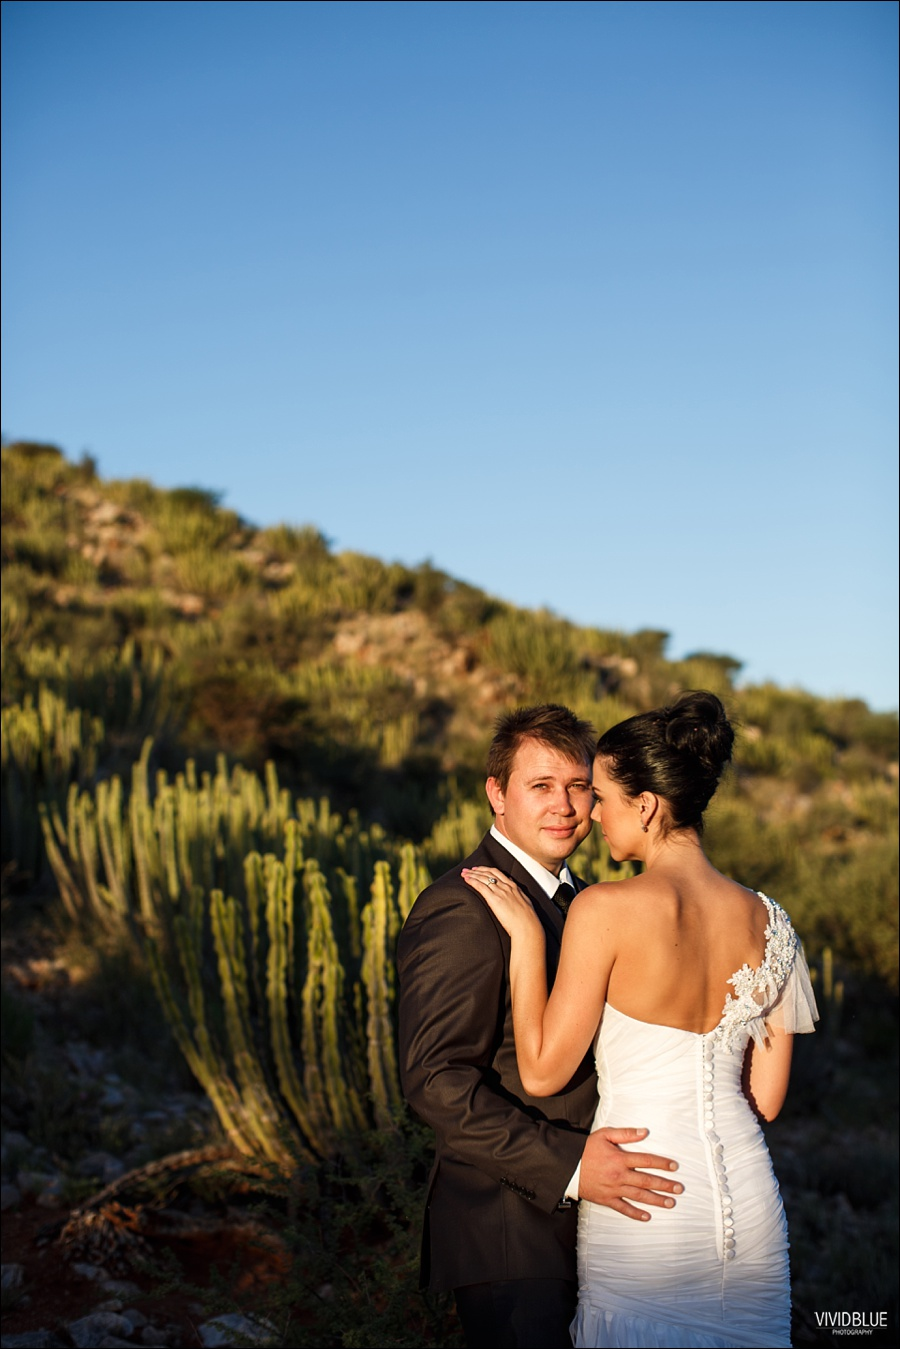 VividBlue-louis-christa-wedding-upington-058